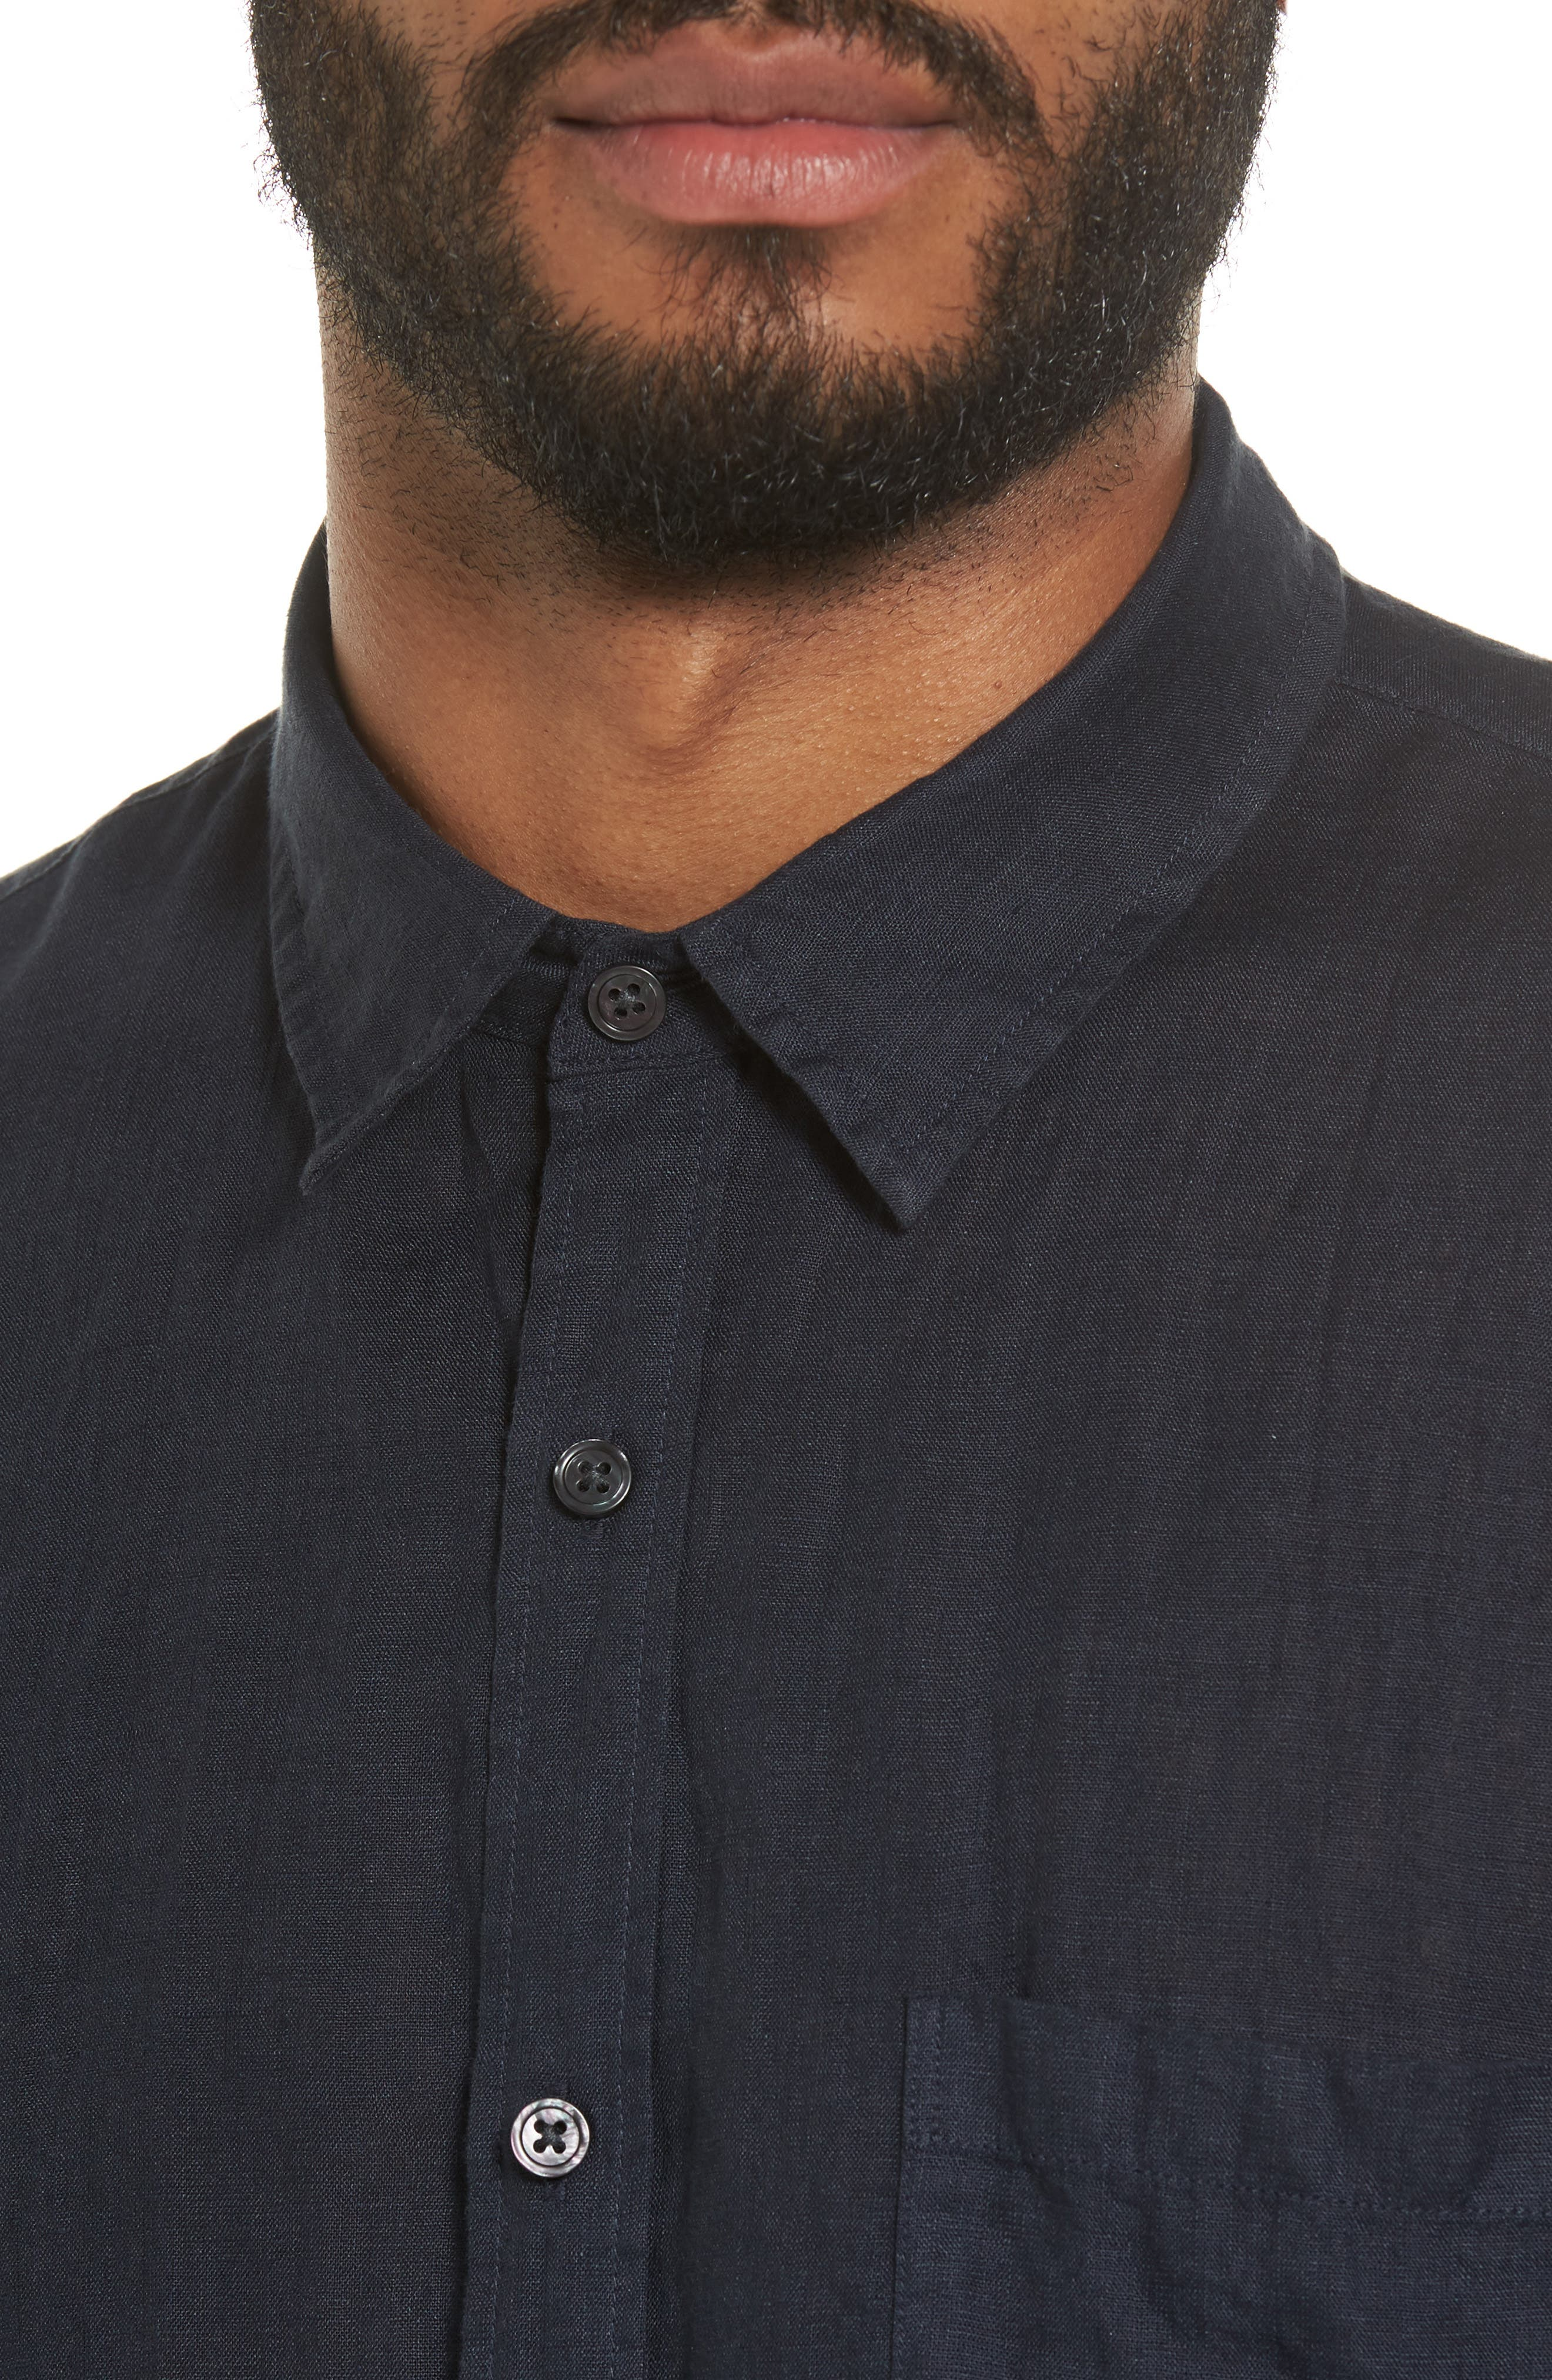 Trim Fit Linen Sport Shirt,                             Alternate thumbnail 4, color,                             403